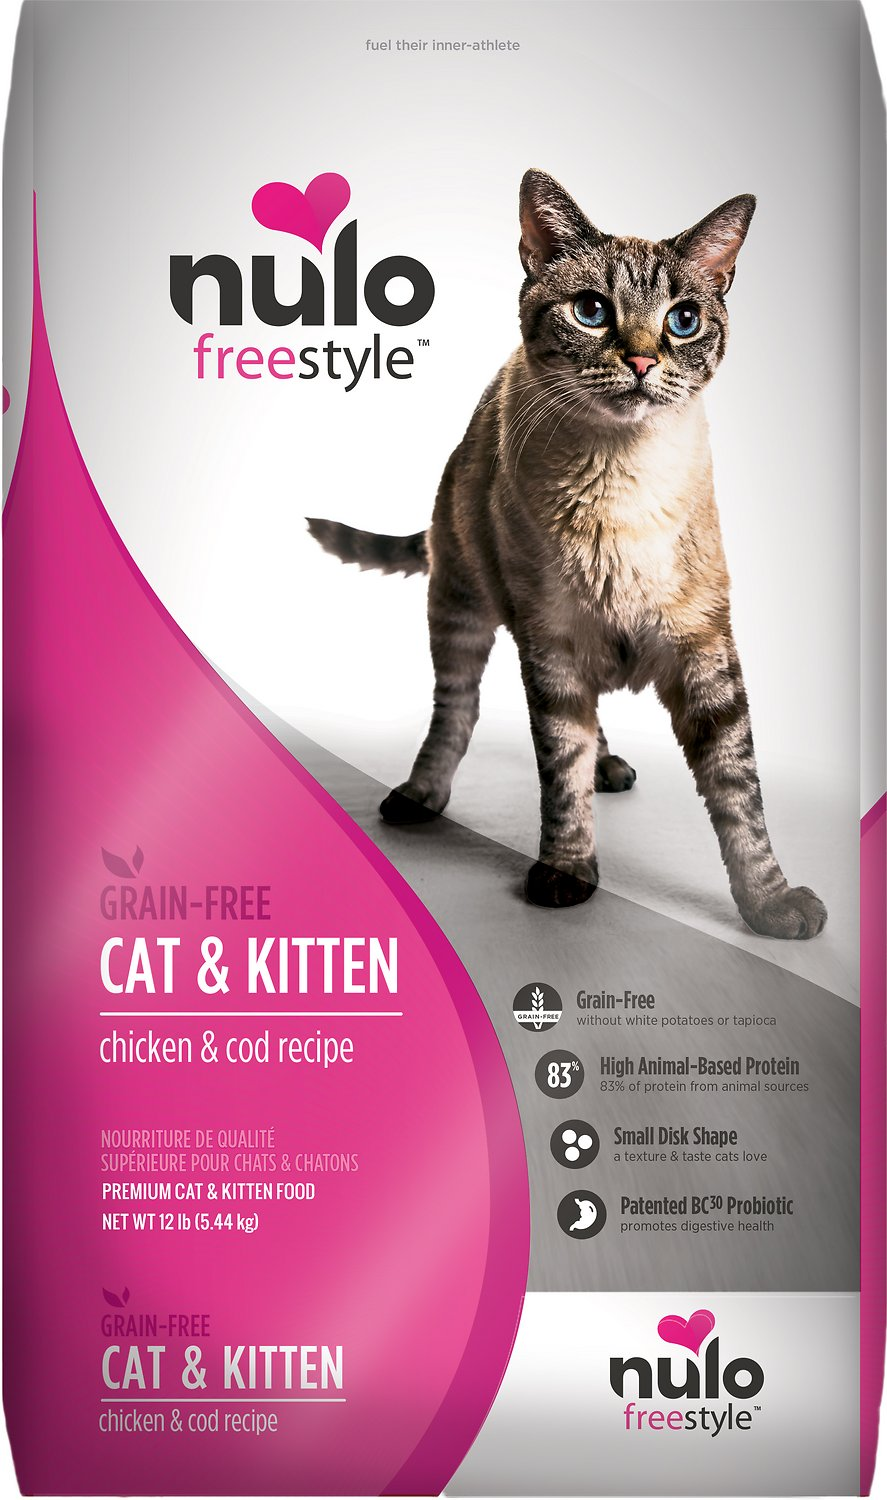 Nulo Cat Freestyle Chicken & Cod Recipe Grain-Free Dry Cat & Kitten Food Image